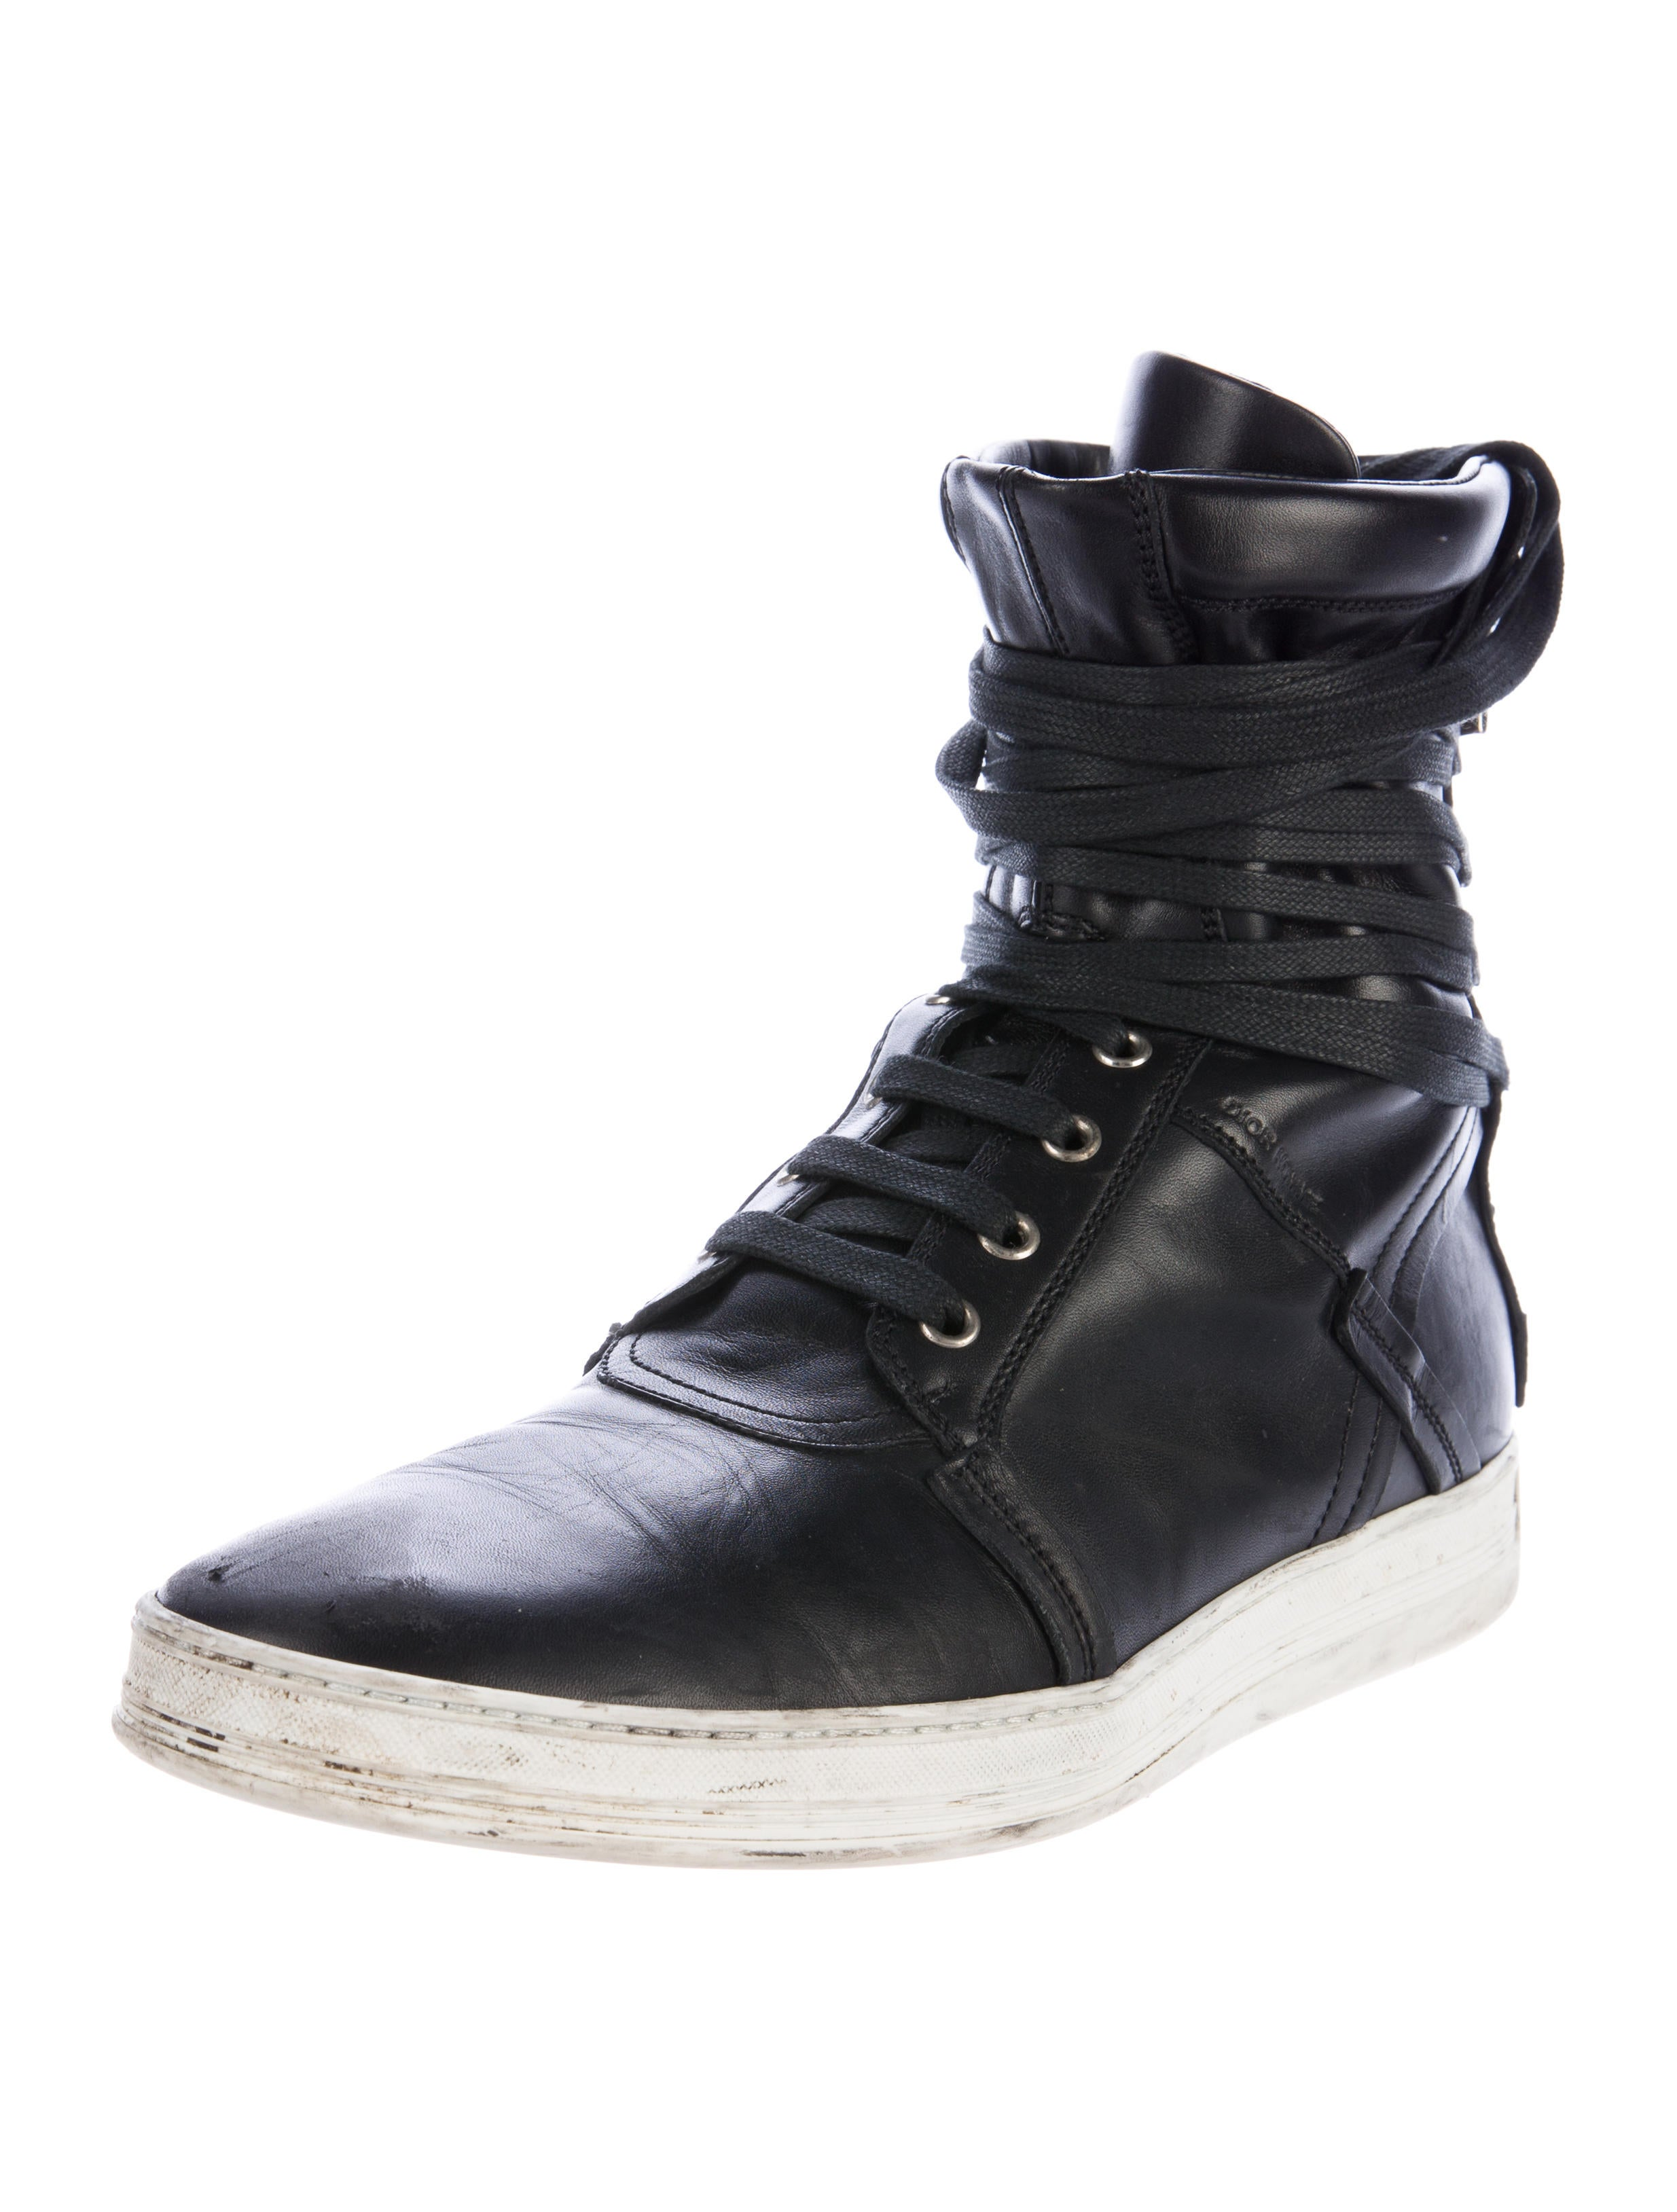 Dior Homme Leather High-Top Sneakers - 413.5KB